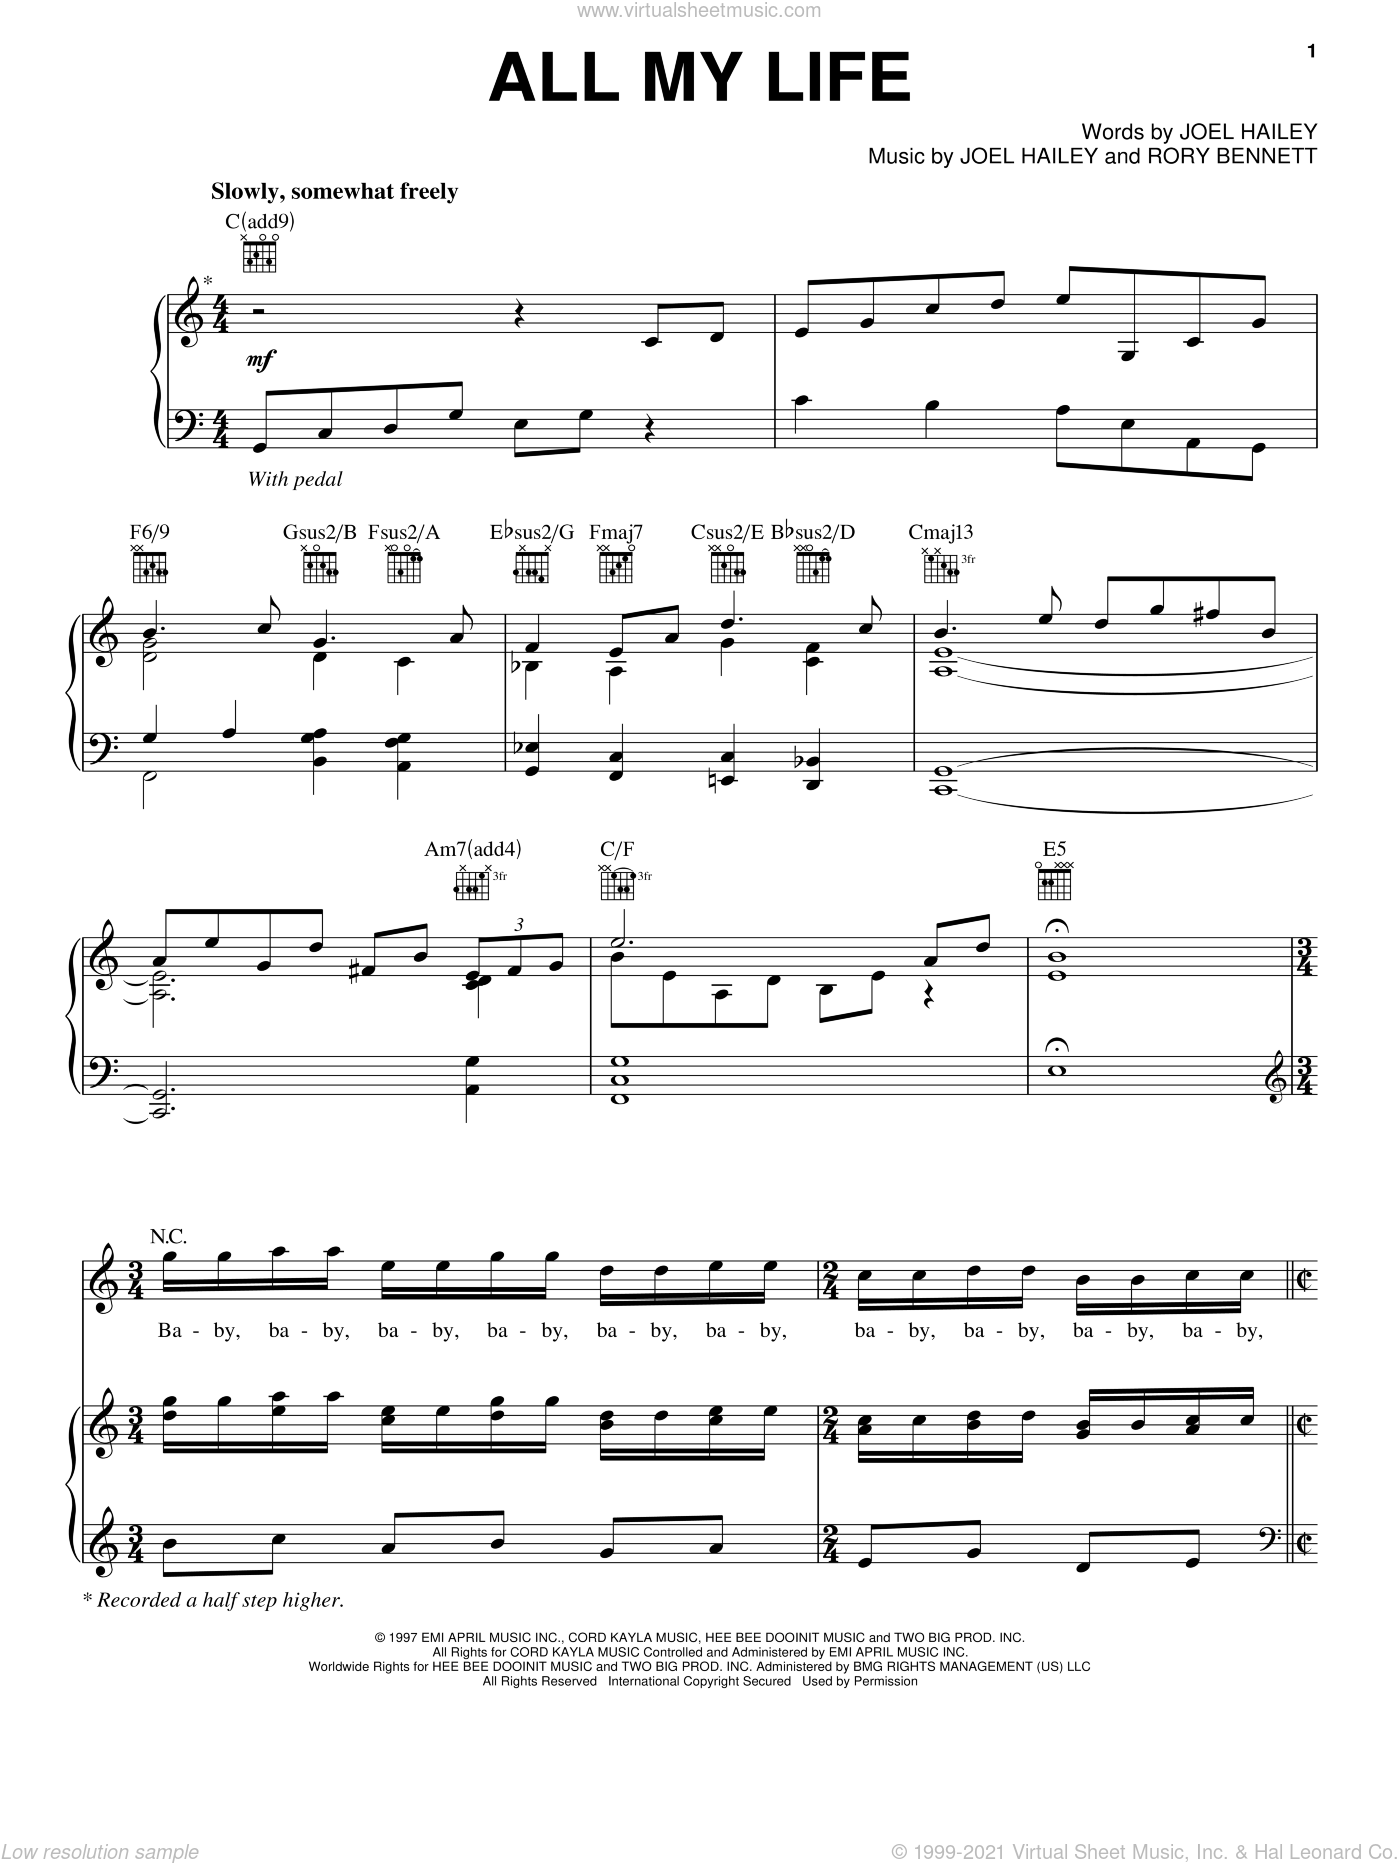 All My Life sheet music for voice, piano or guitar by K-Ci & JoJo, Joel Hailey and Rory Bennett, intermediate skill level